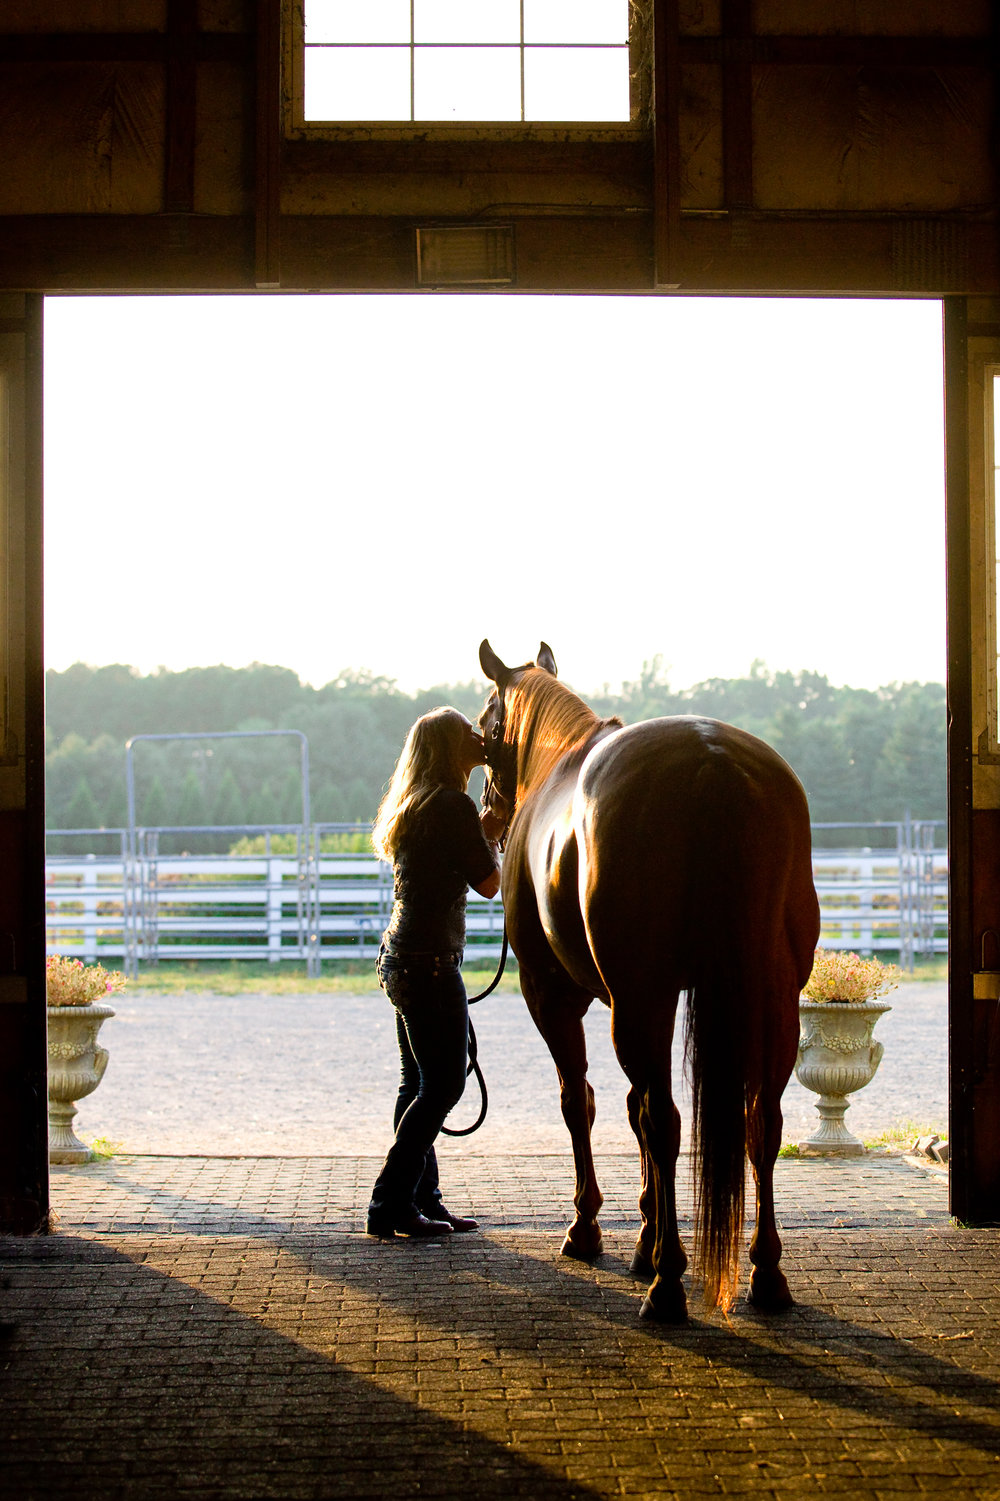 bethanygracephoto-equine-photography-maryland-virginia-31.JPG